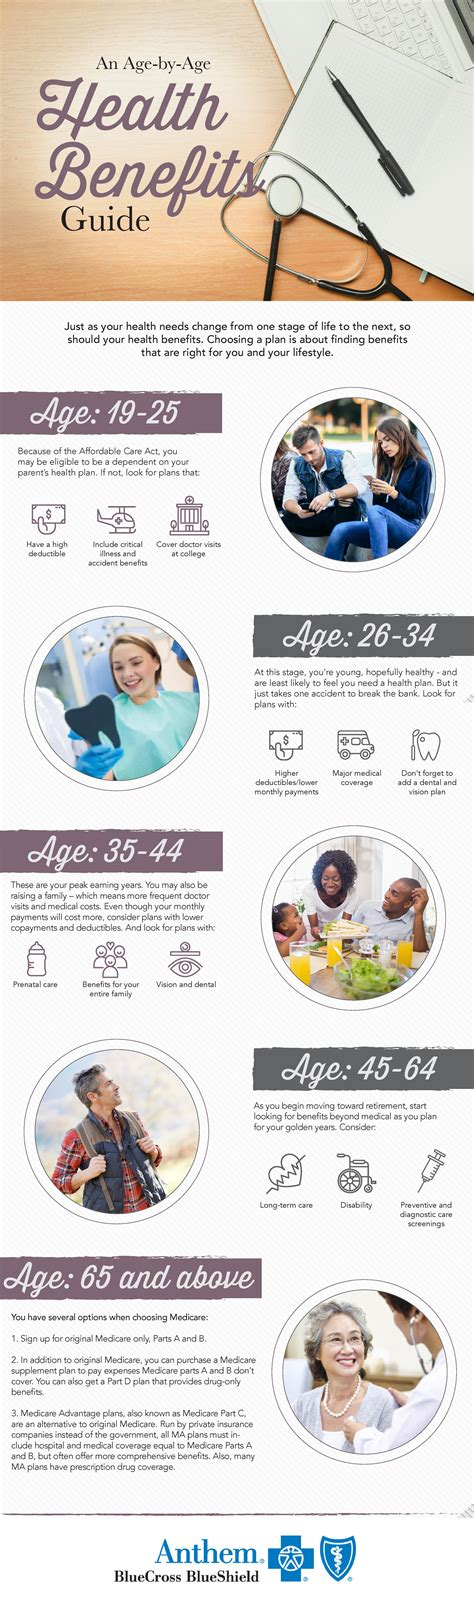 Catastrophic health insurance is designed to cover young people, under the age of 30. Anthem Can Help You Find Insurance Coverage for Your Needs